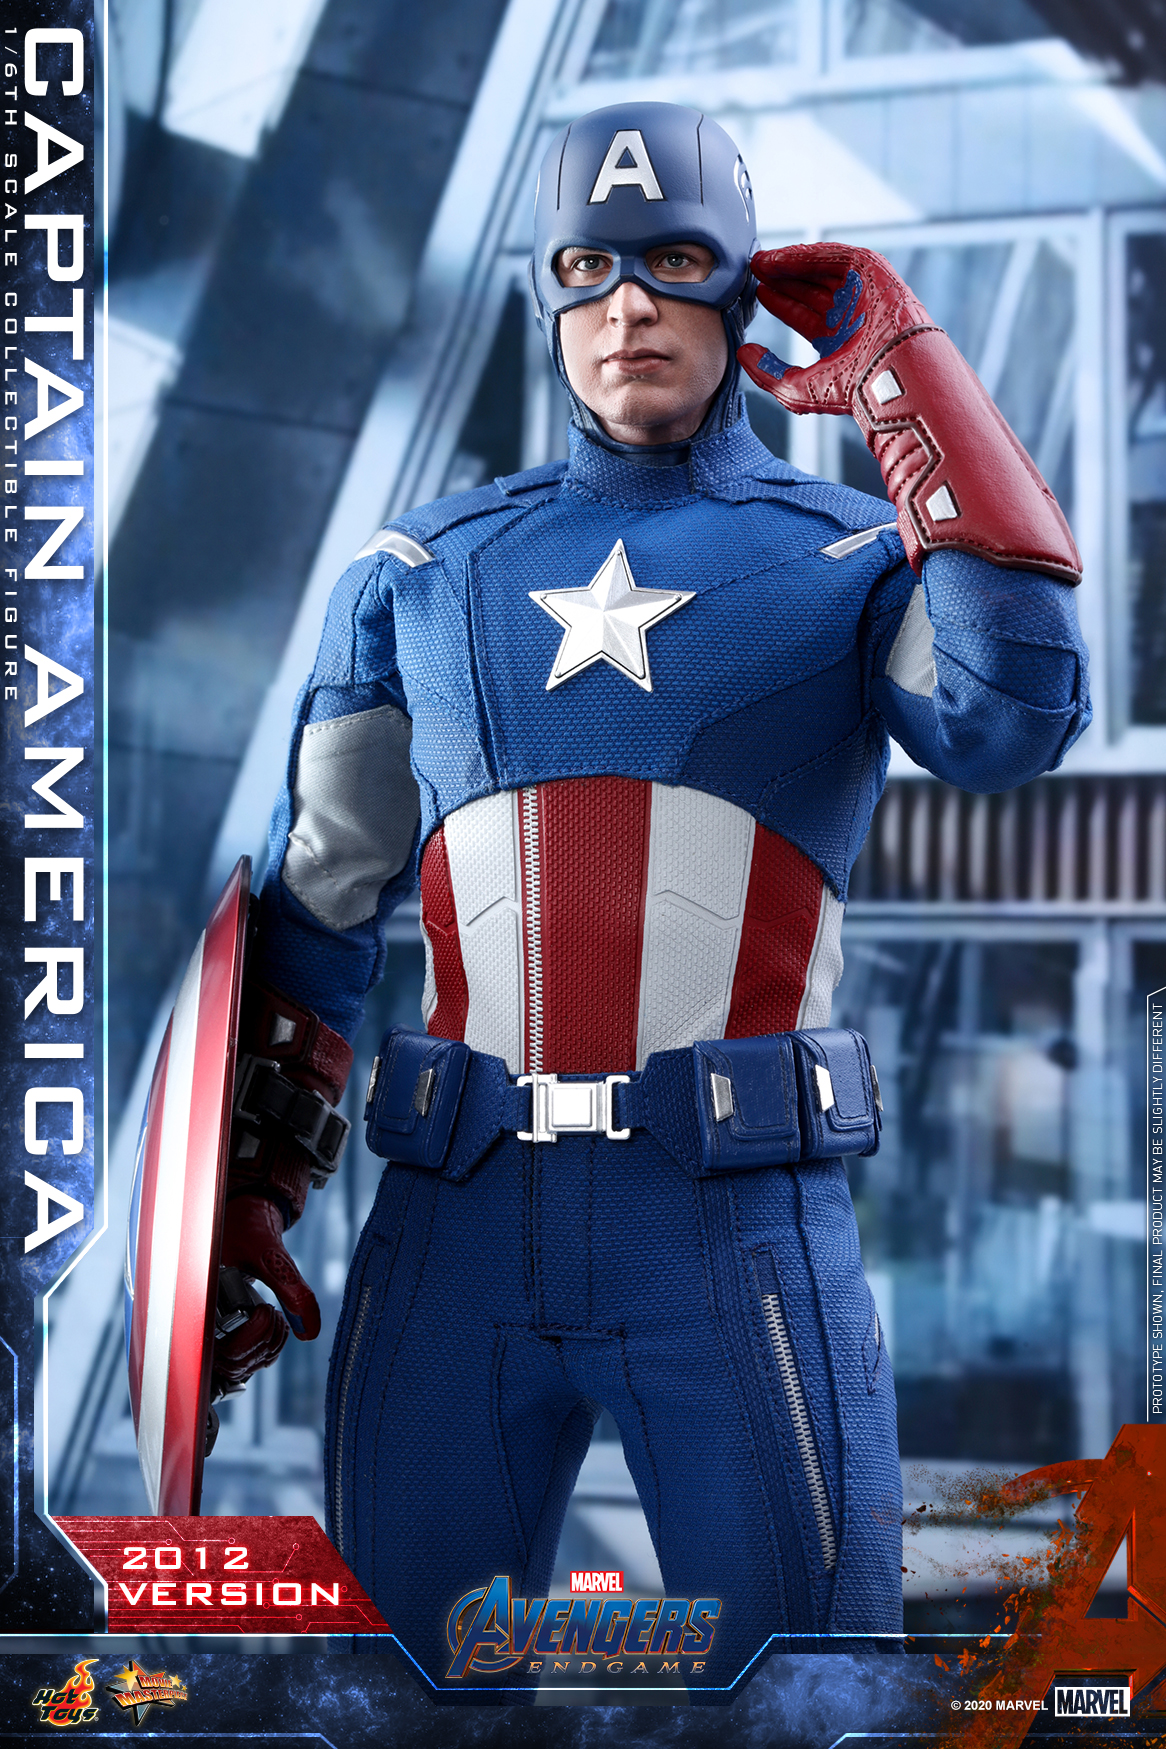 Hot Toys - A4 - Captain America (2012 Version) Collectible Figure_PR17